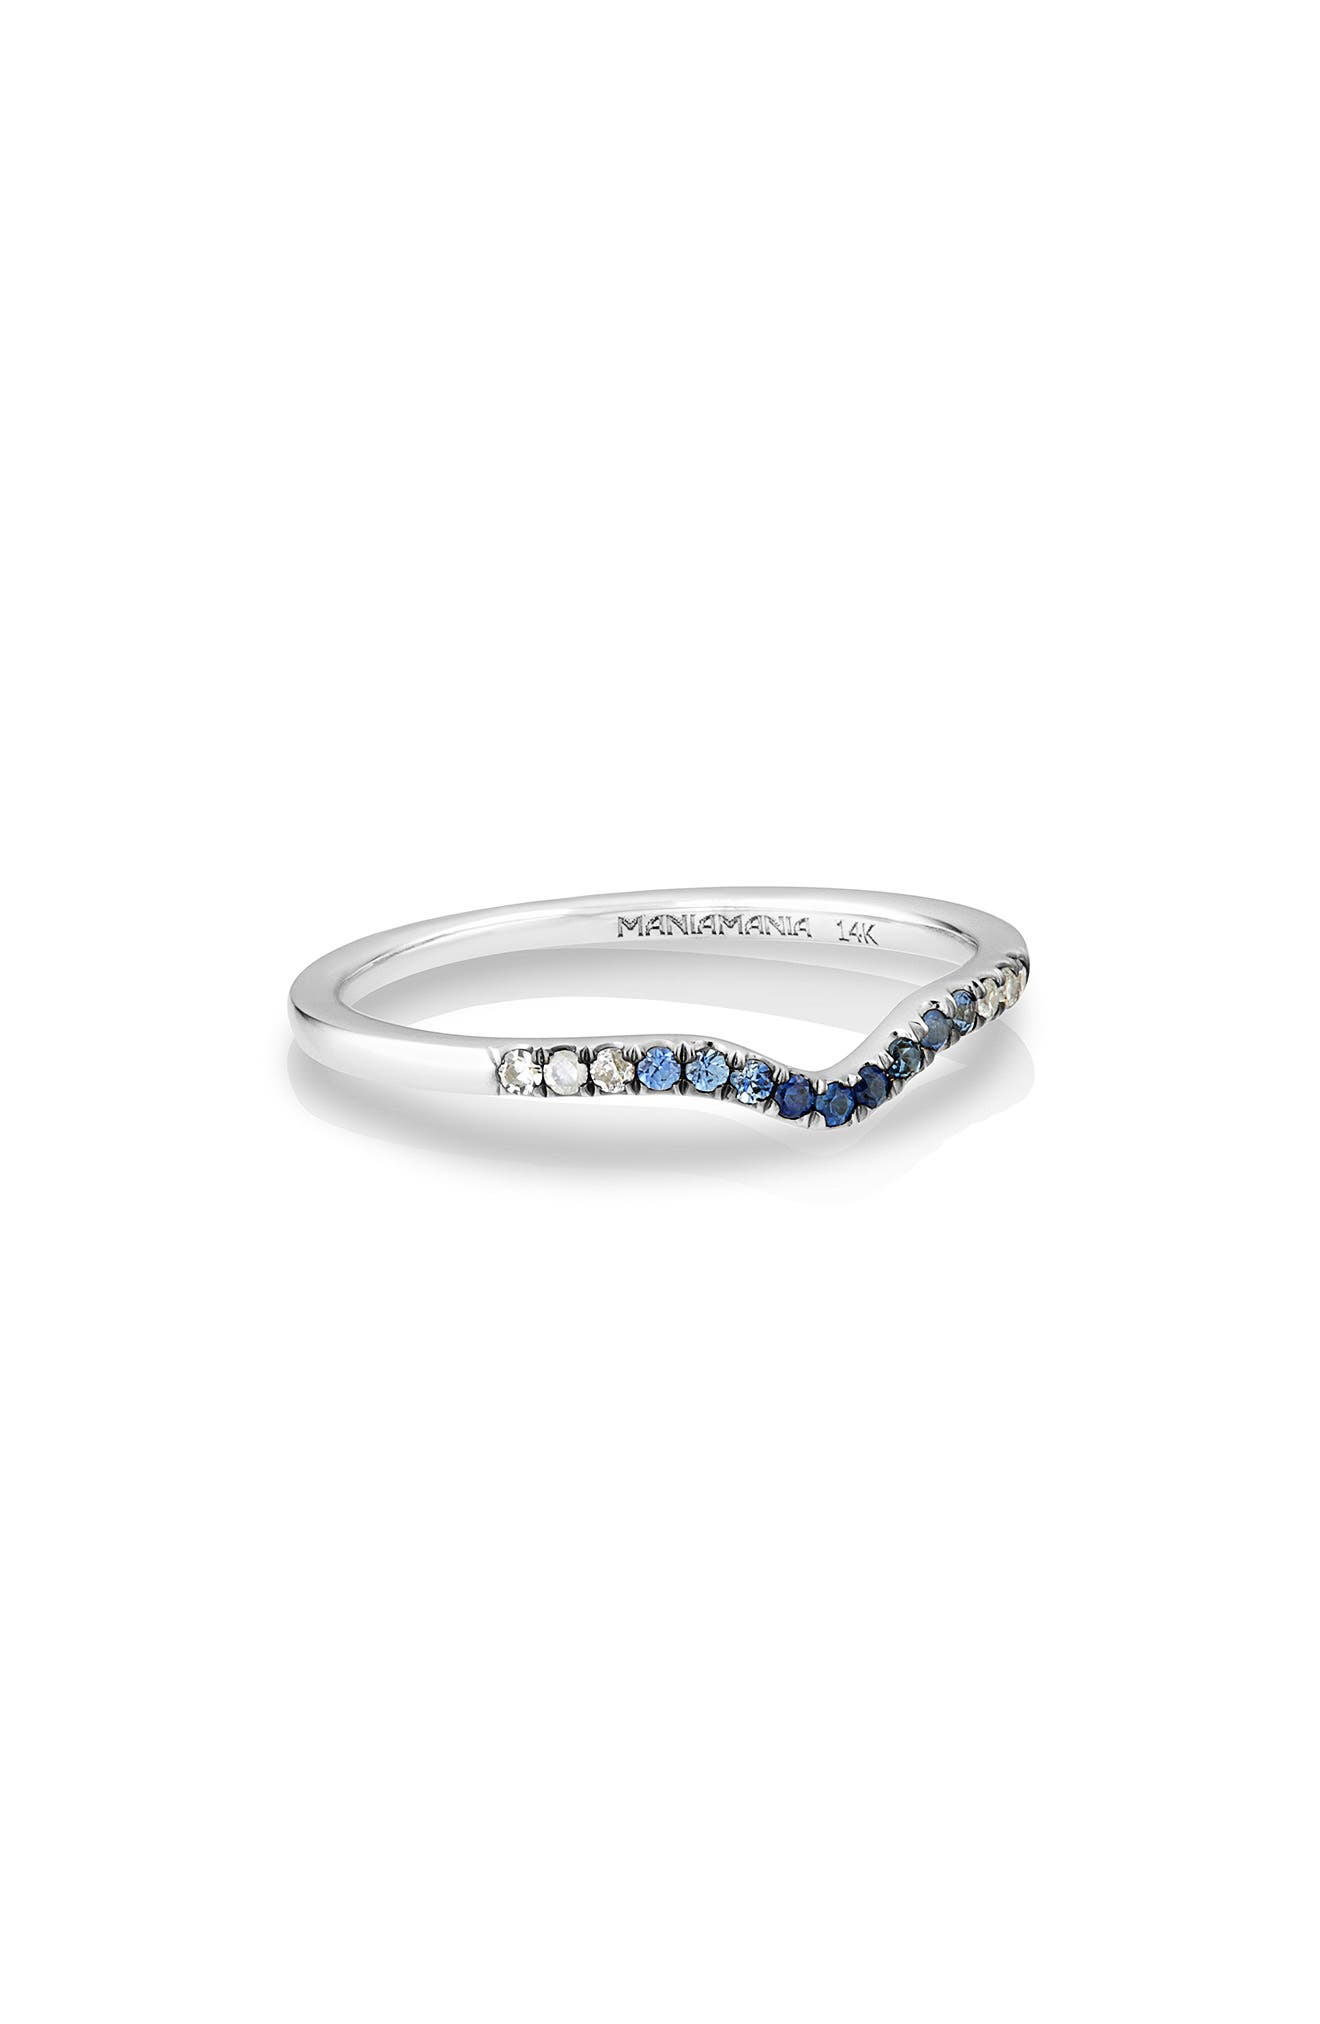 Unity Gradient Sapphire Band Ring,                             Main thumbnail 1, color,                             BLUE SAPPHIRE/ WHITE GOLD